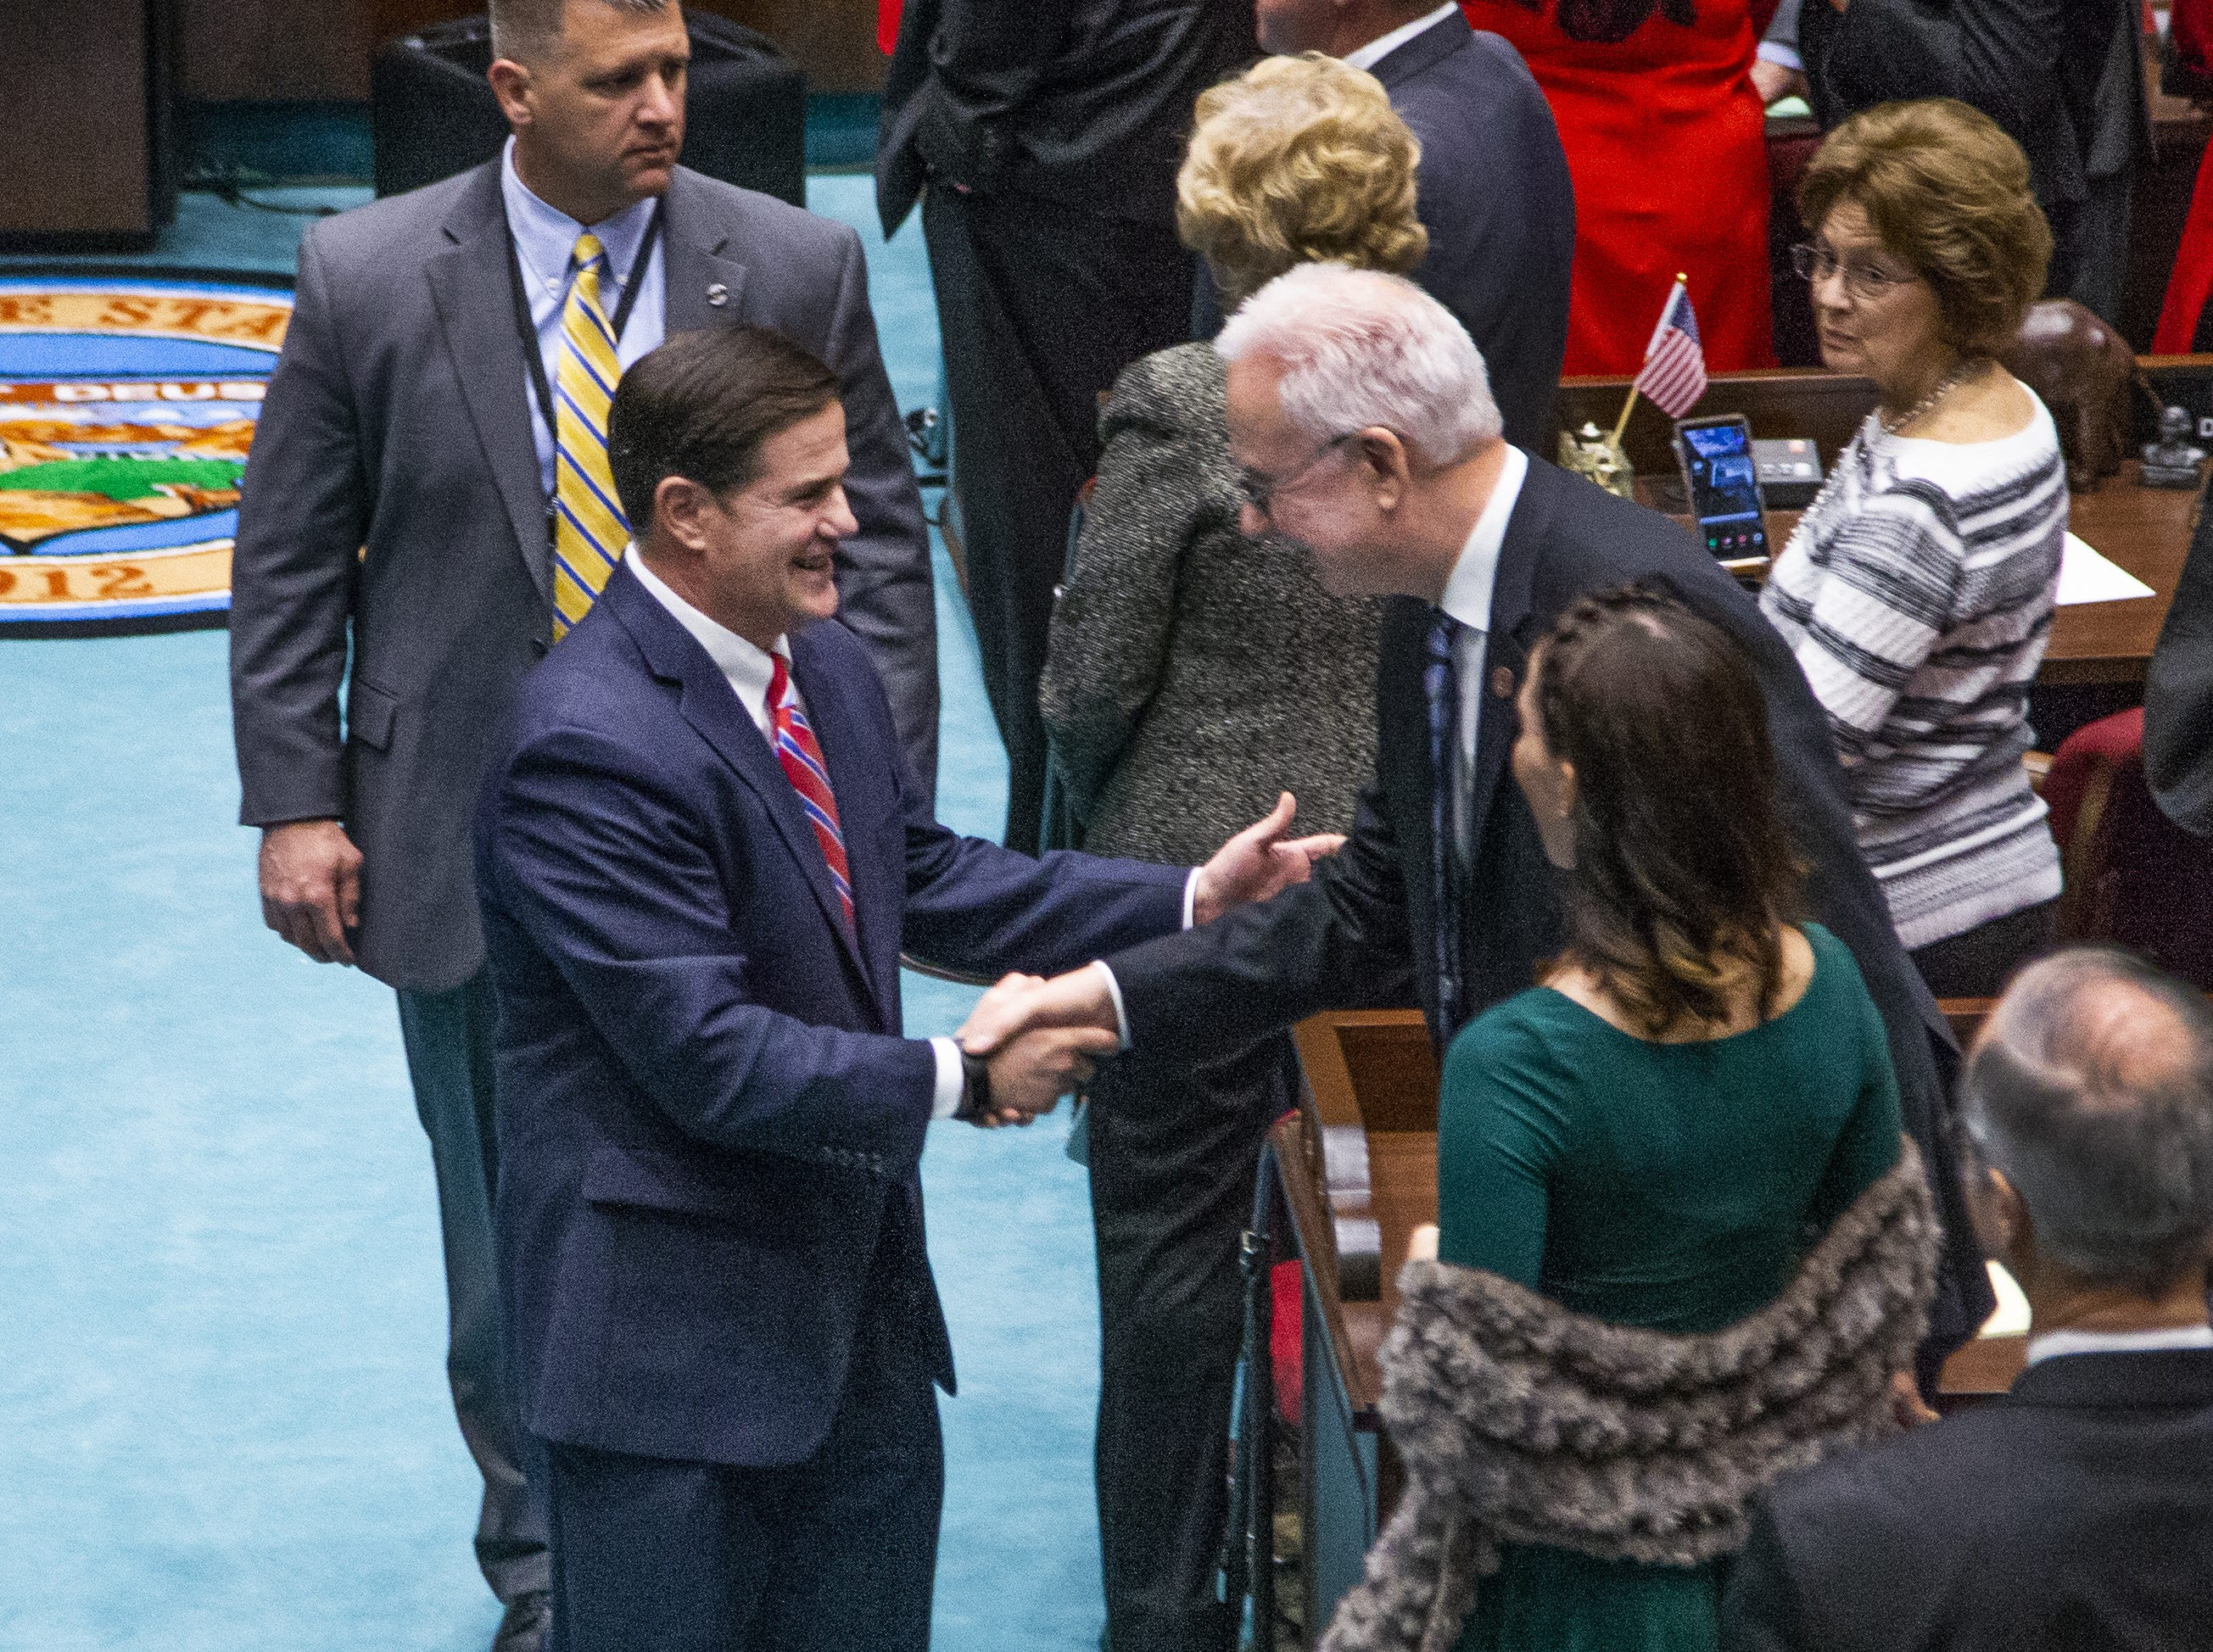 Gov. Doug Ducey greets legislators as he leaves the House of Representatives after delivering his State of the State address to the Legislature and guests gathered at the State Capitol on Jan. 14, 2019.